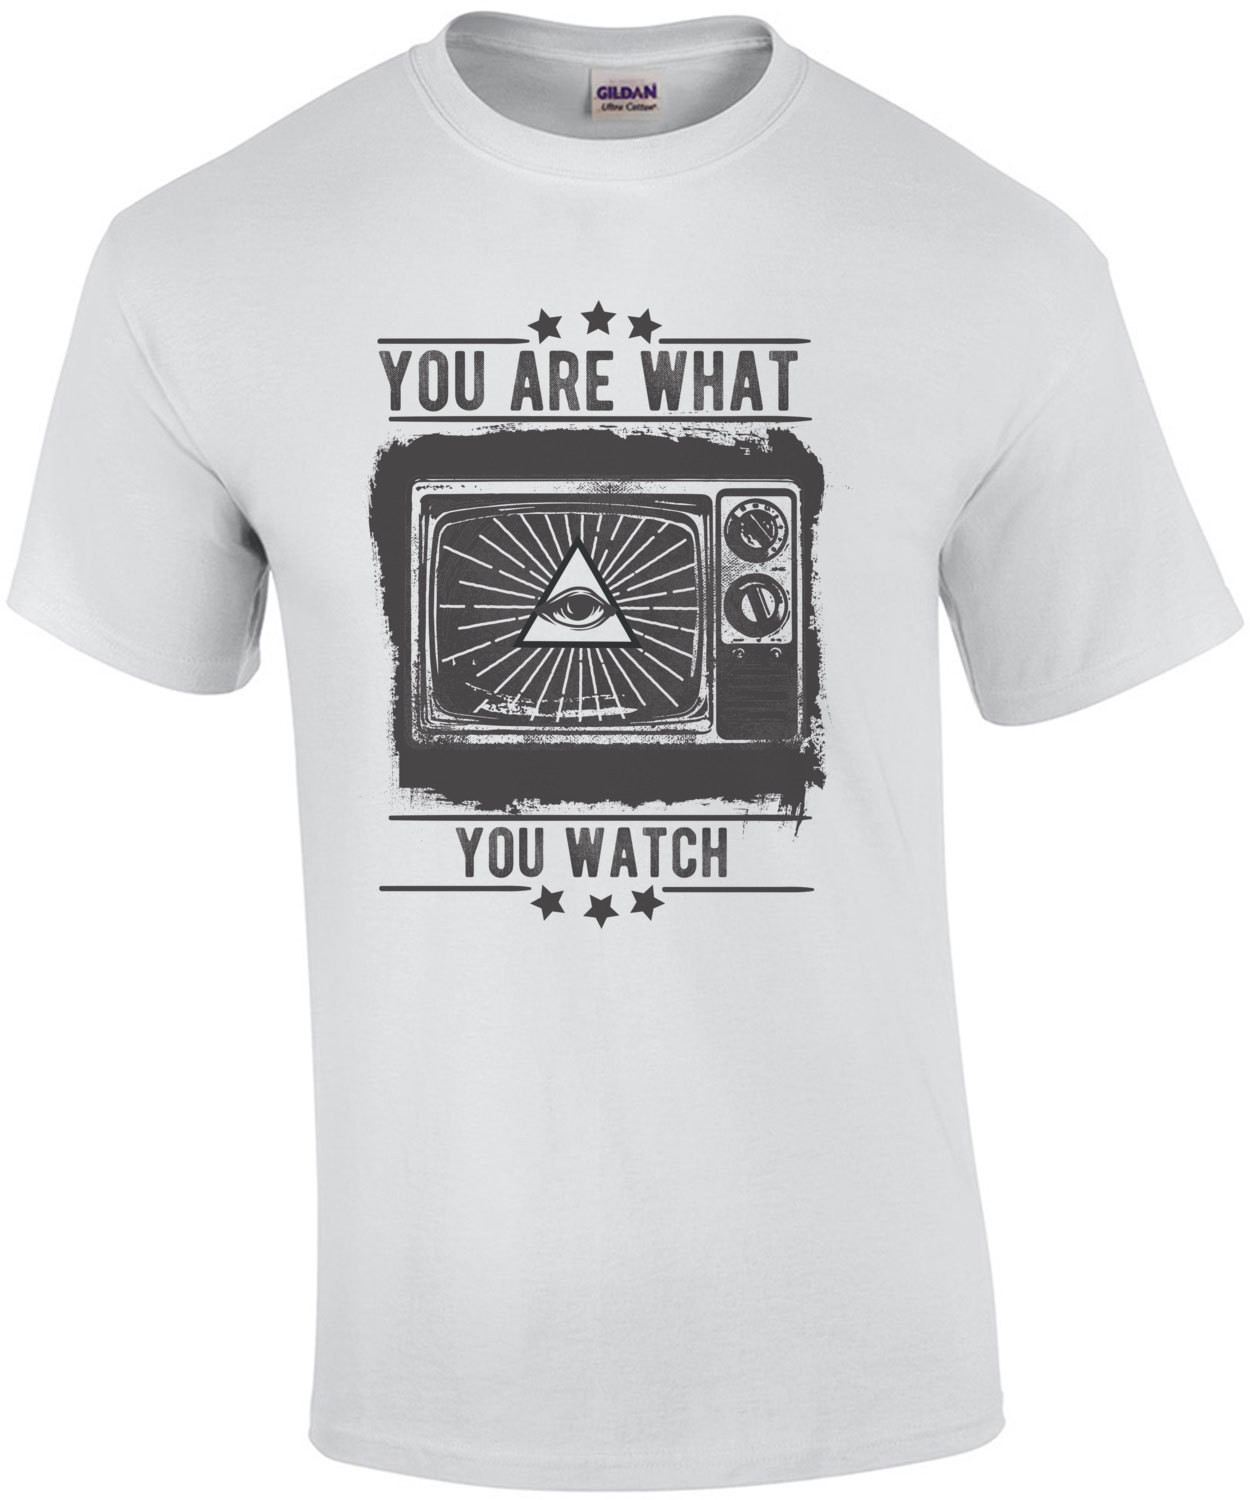 You Are What You Watch Illuminati Anti Tv T-Shirt